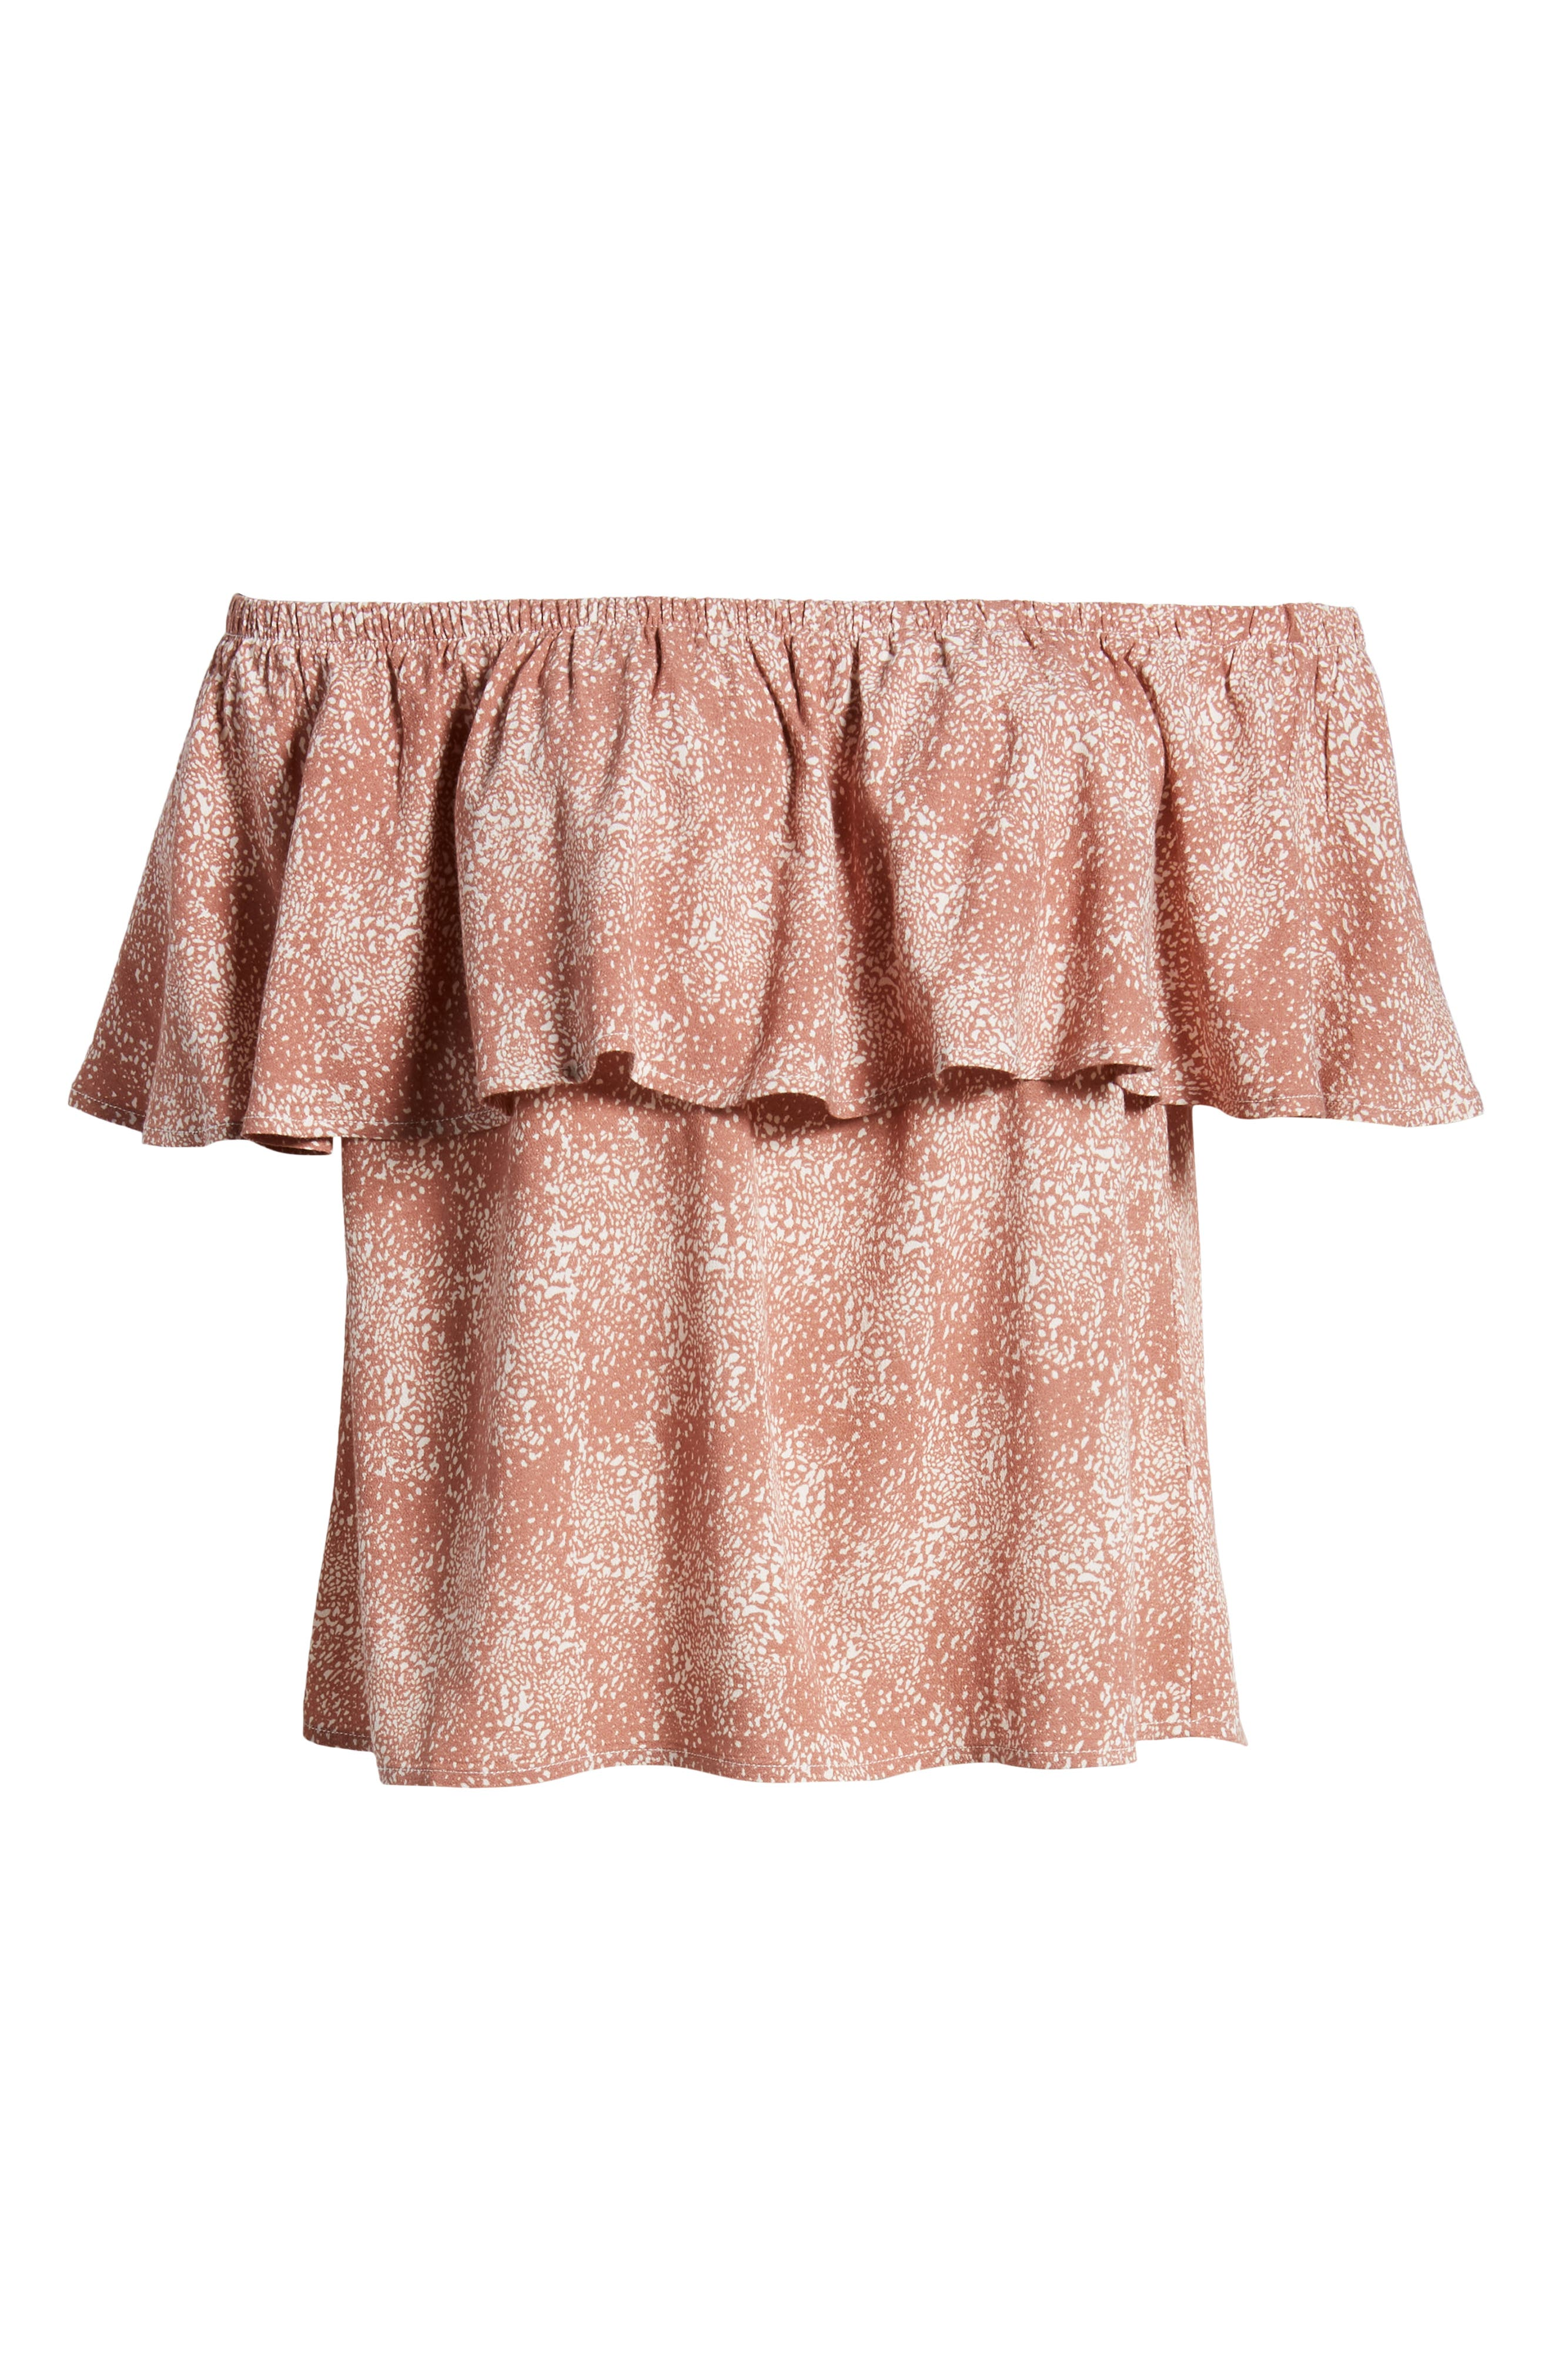 Mary Off the Shoulder Top,                             Alternate thumbnail 13, color,